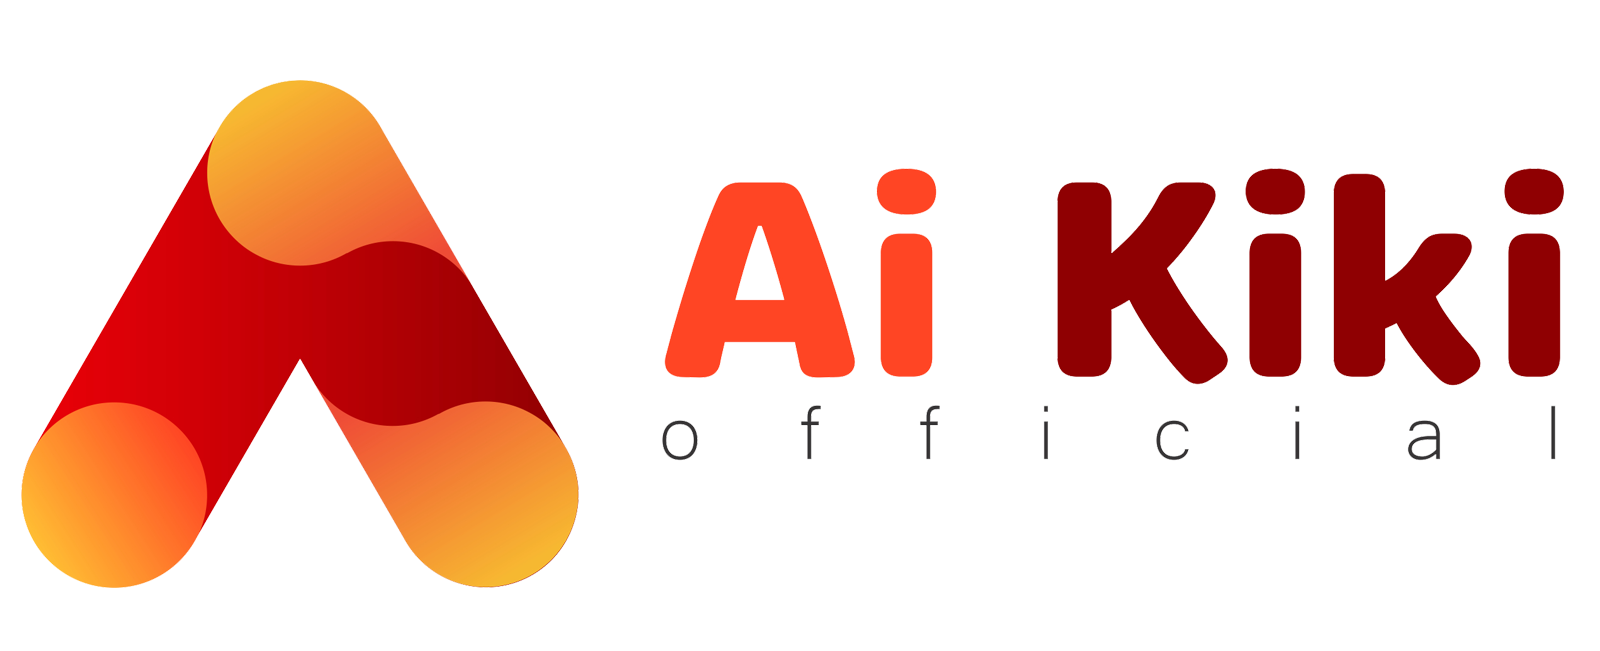 Ai Kiki Official :: Share Knowledge and Receive Services